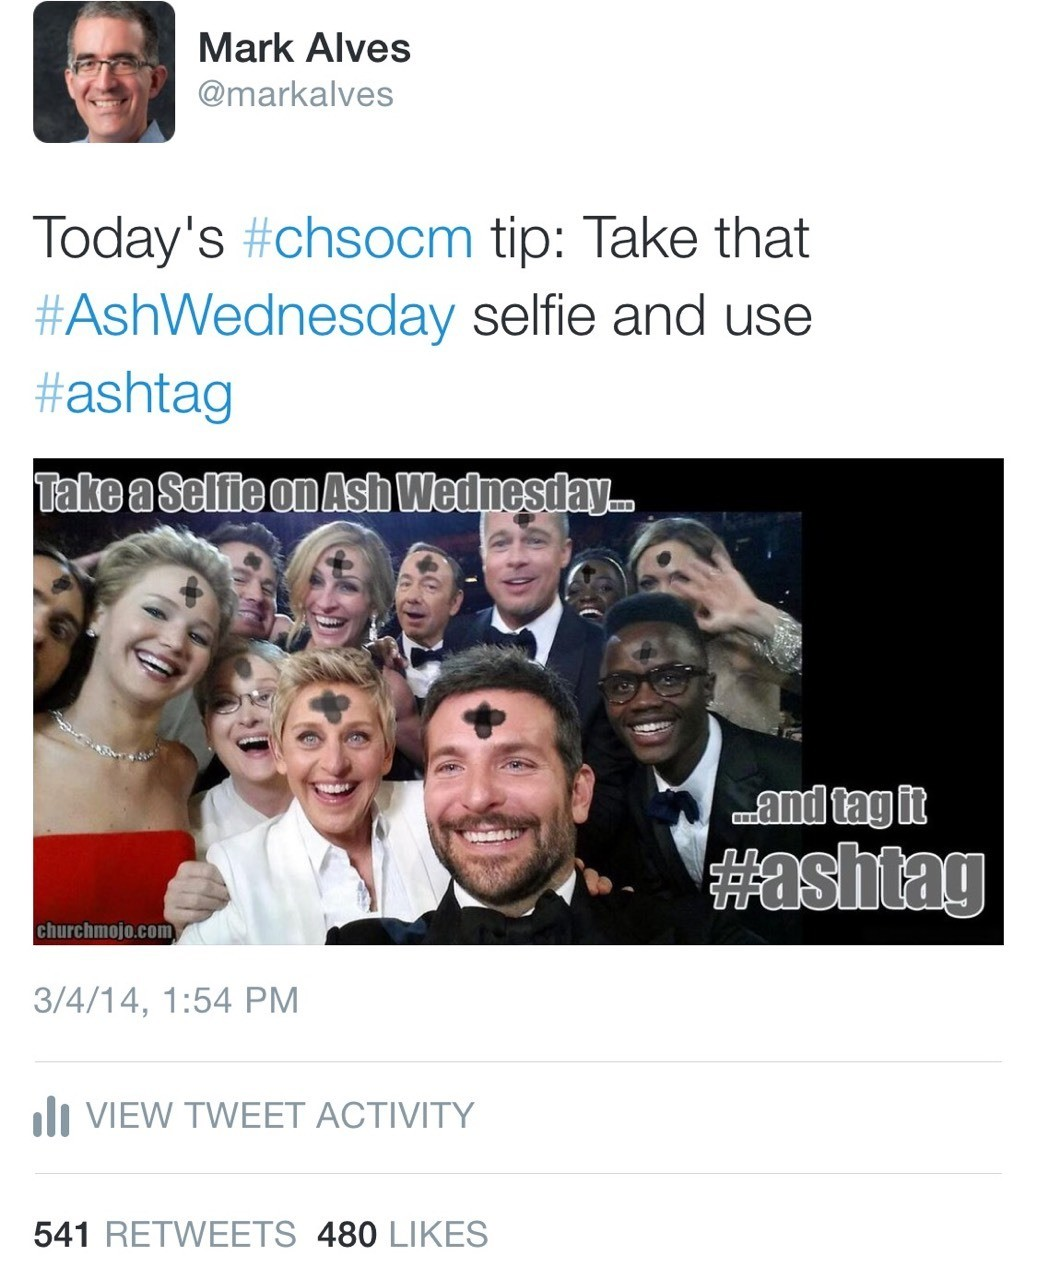 SOCIAL | my #ashtag meme sparked the hashtag to trend internationally on Ash Wednesday and landed an interview with the BBC.